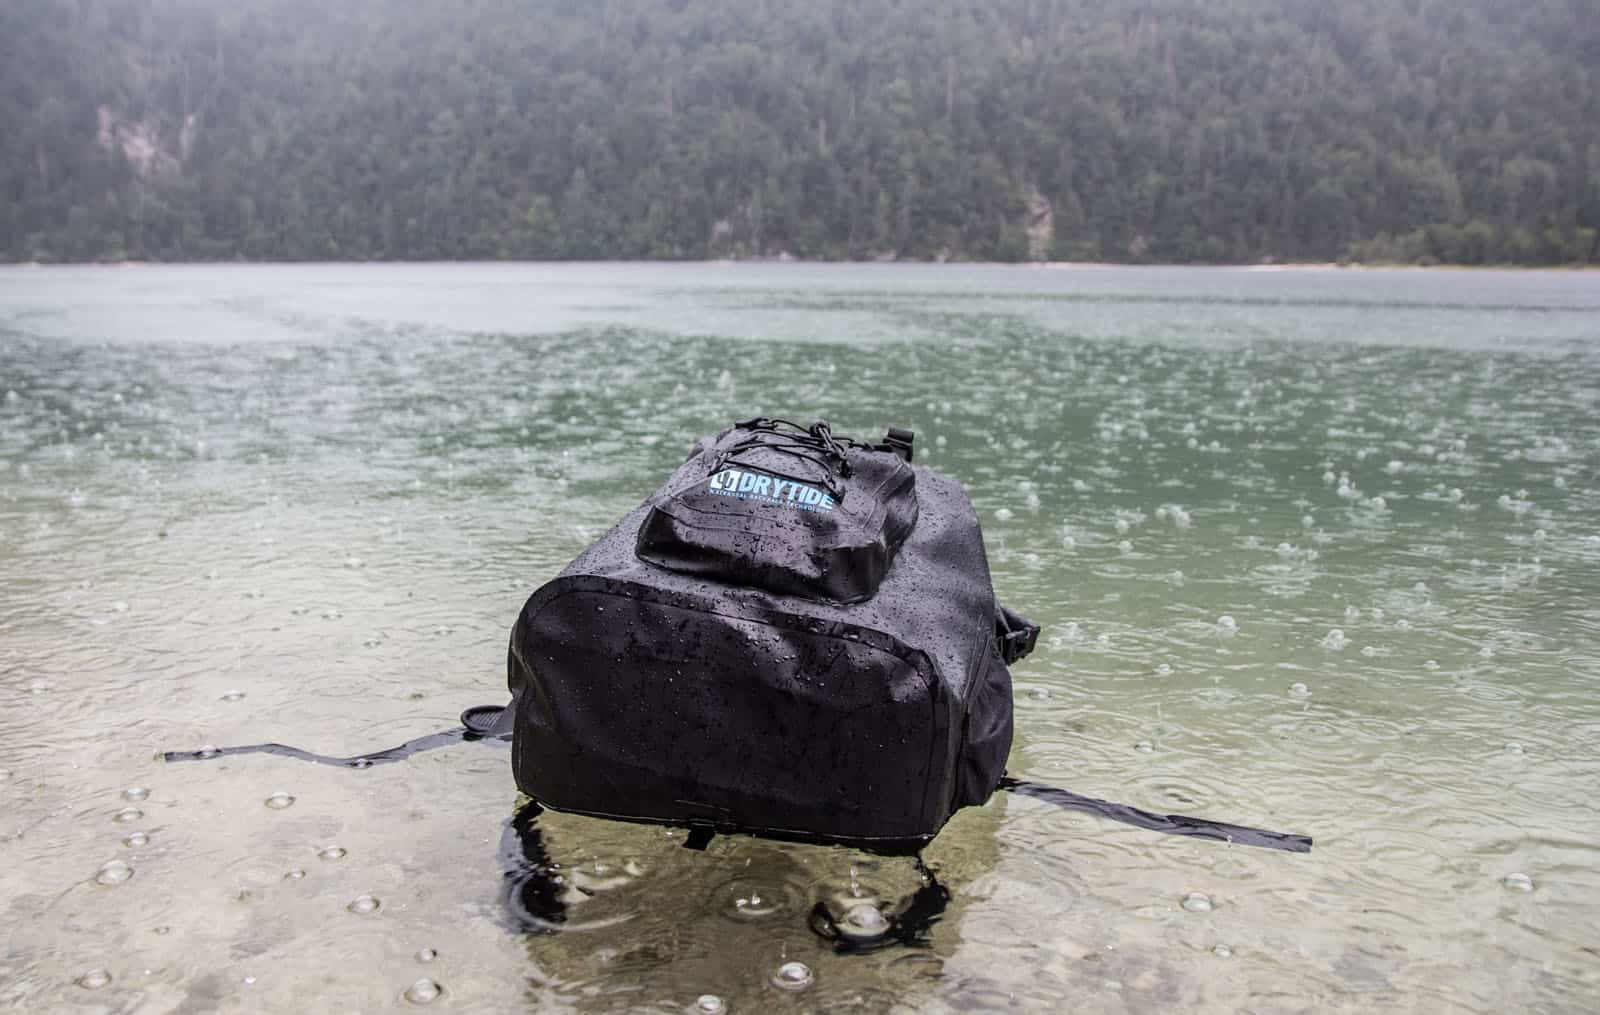 DryTide backpack is a backpack that you can literally throw into the water and all your stuff inside will stay safe and dry.